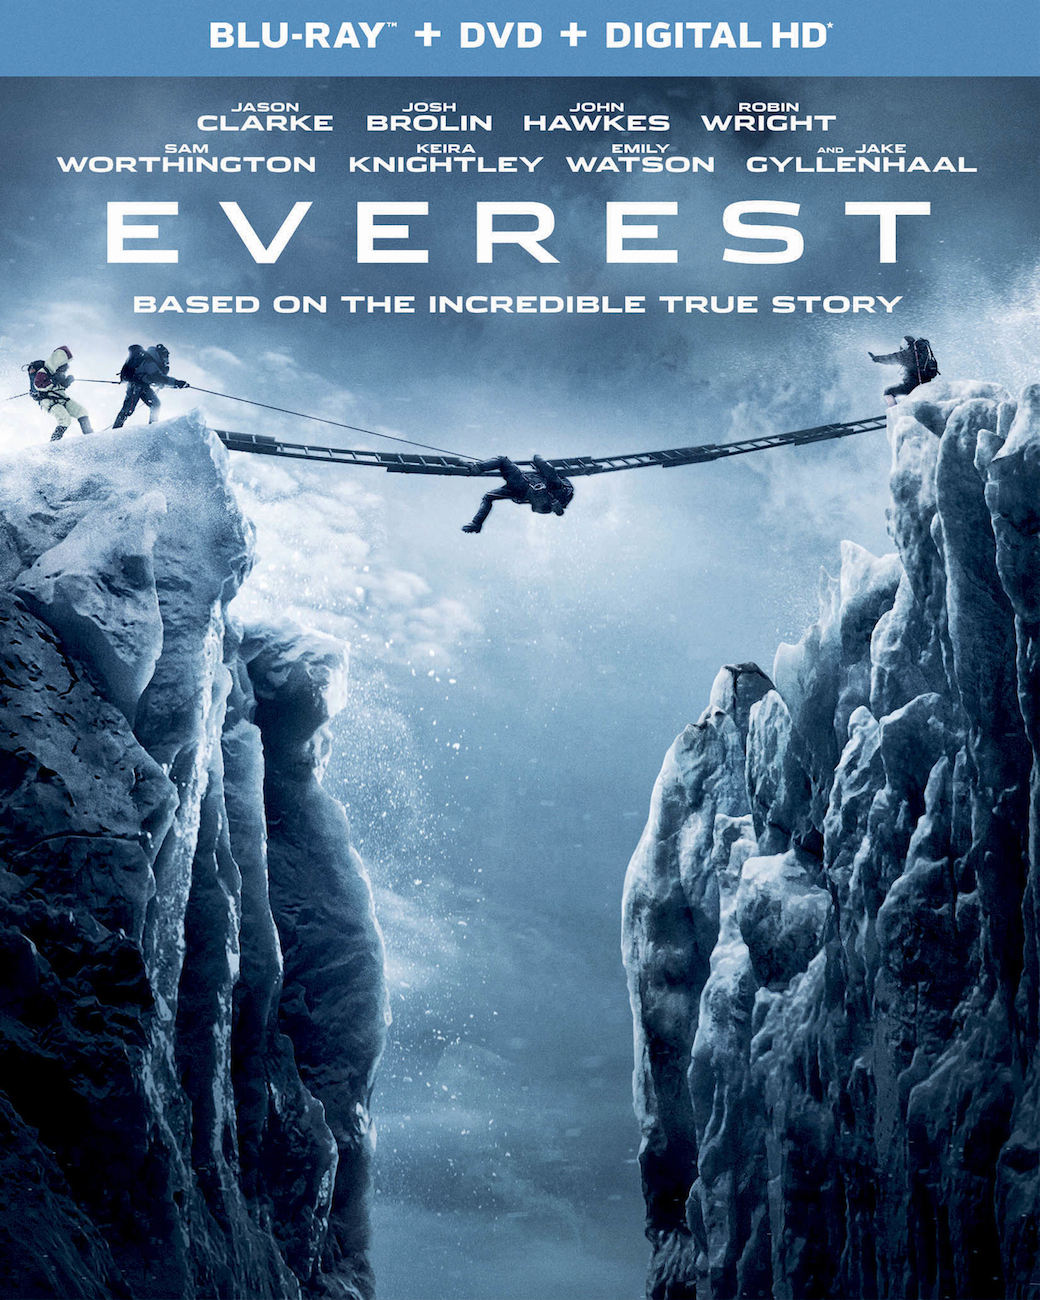 Everest Blu-ray Box Art